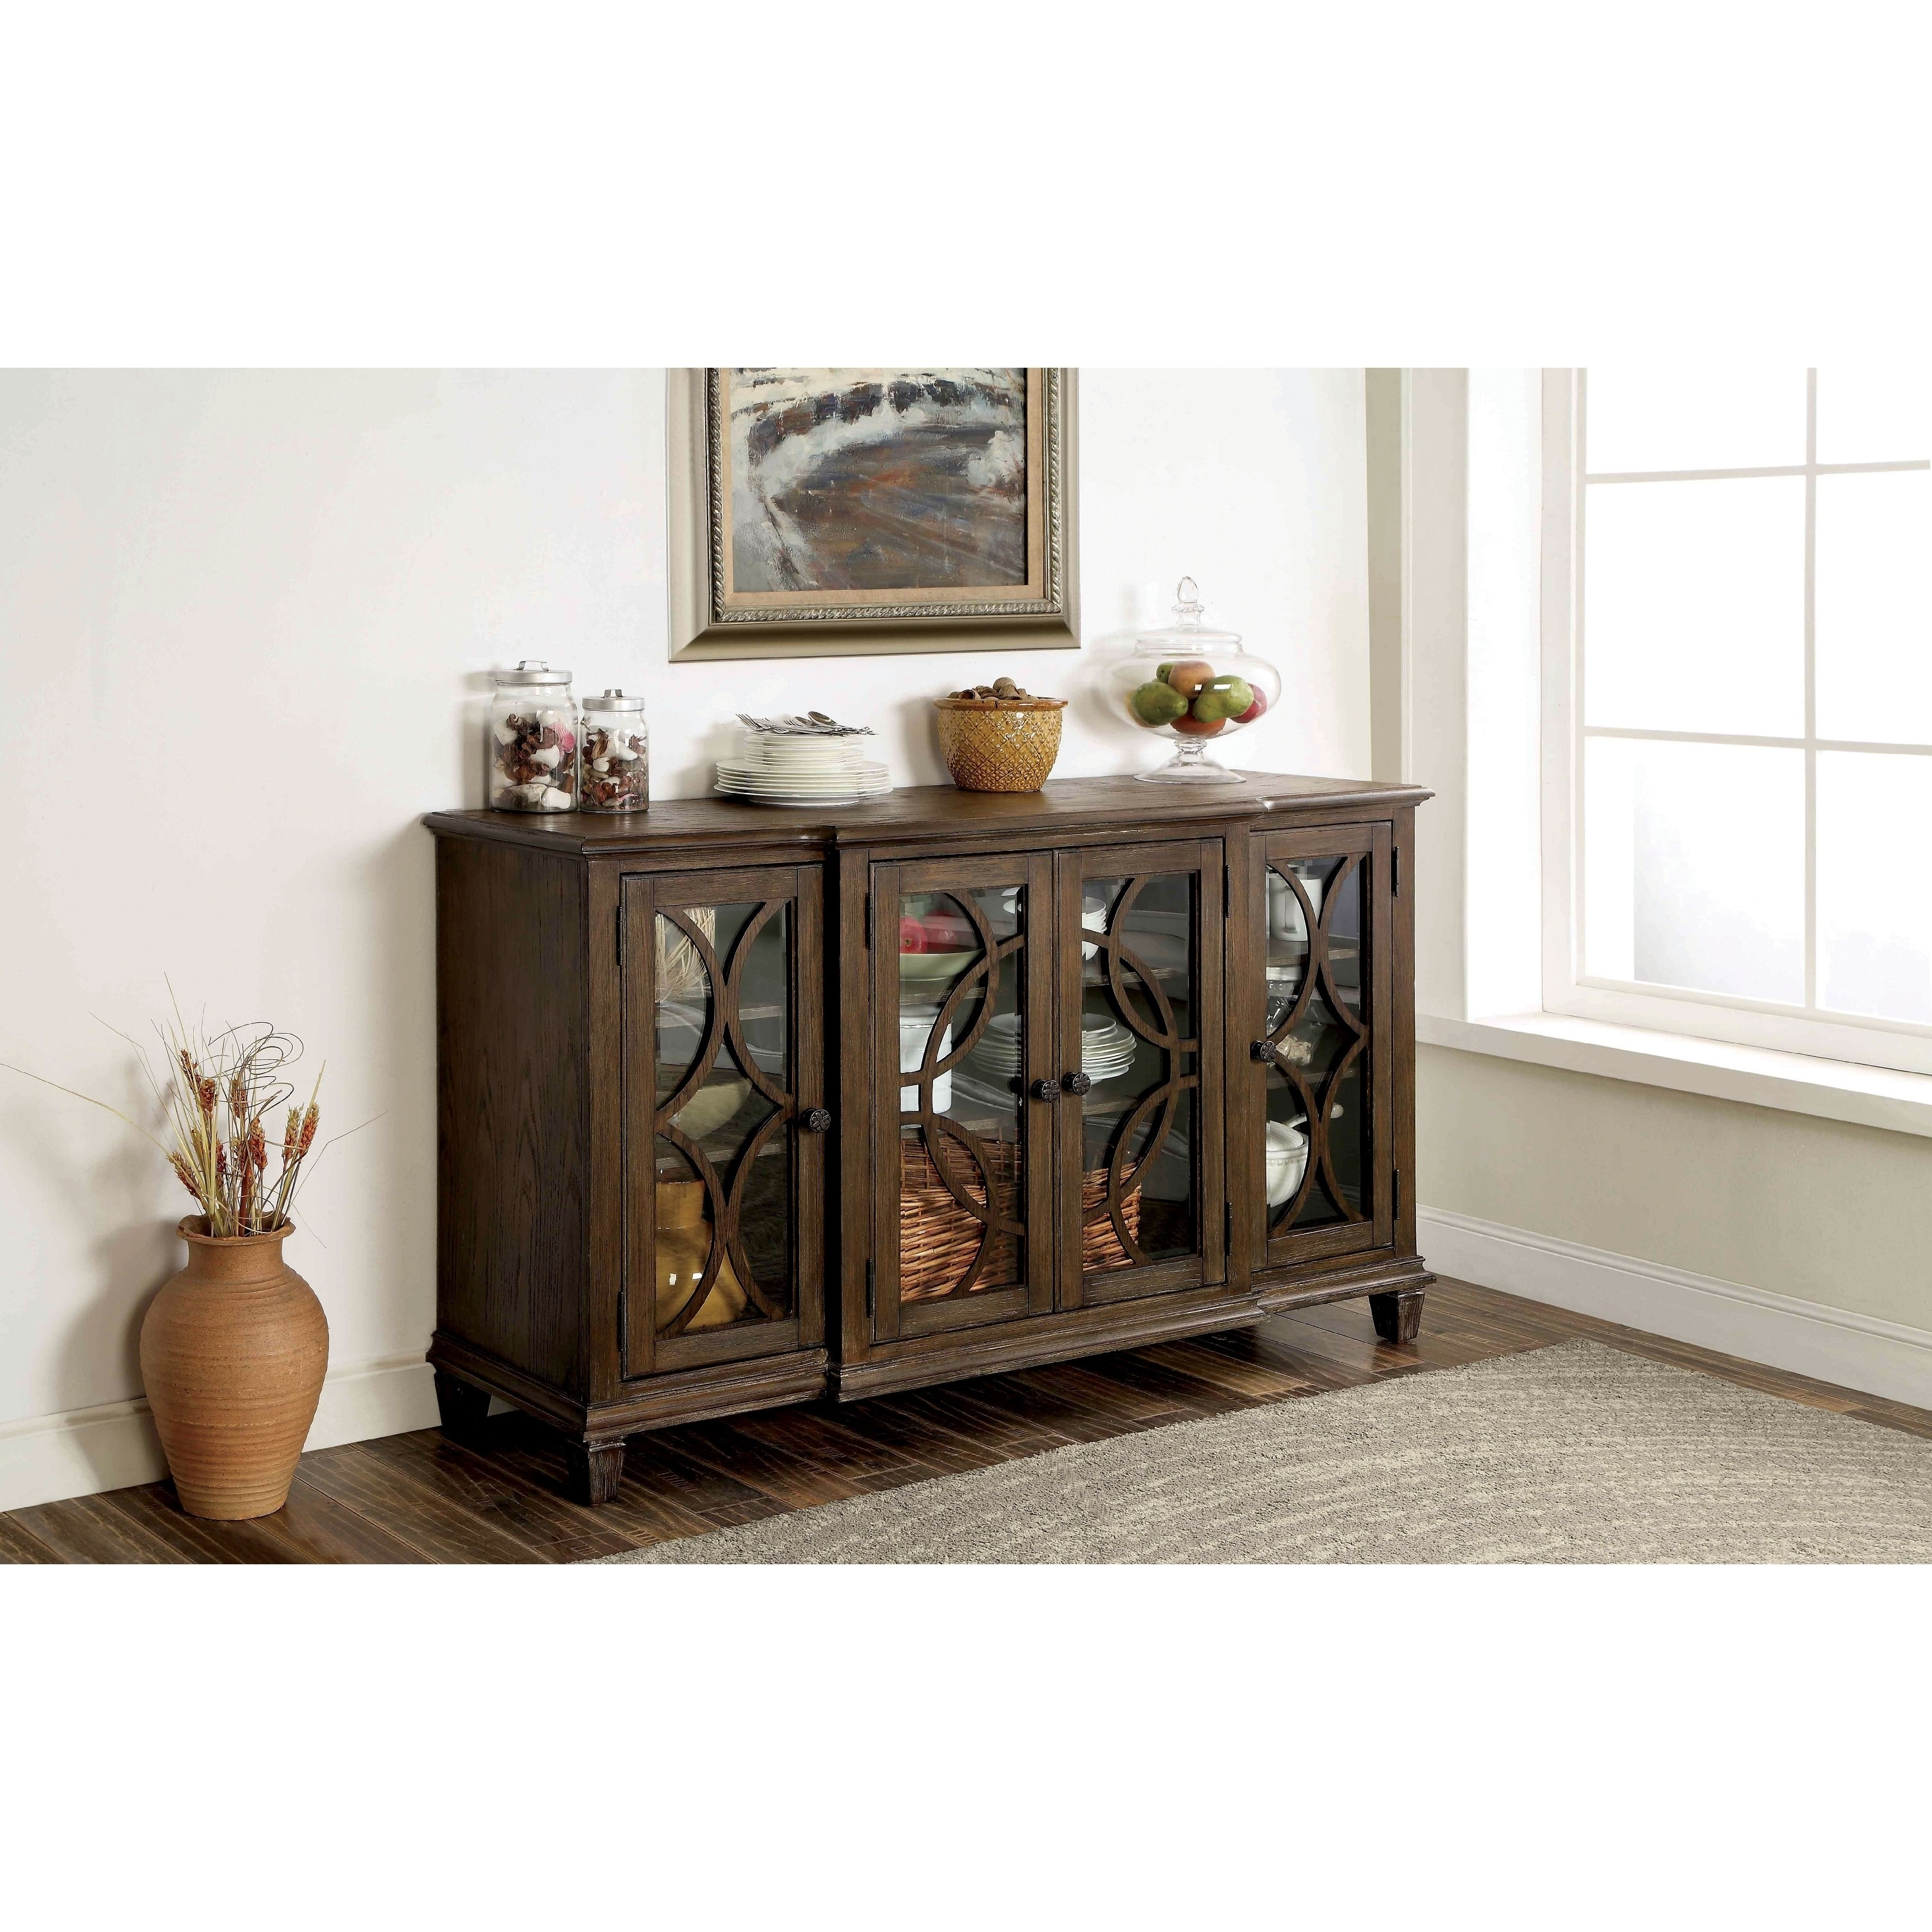 Furniture of America Haylette Rustic Wire-Brushed Brown D...